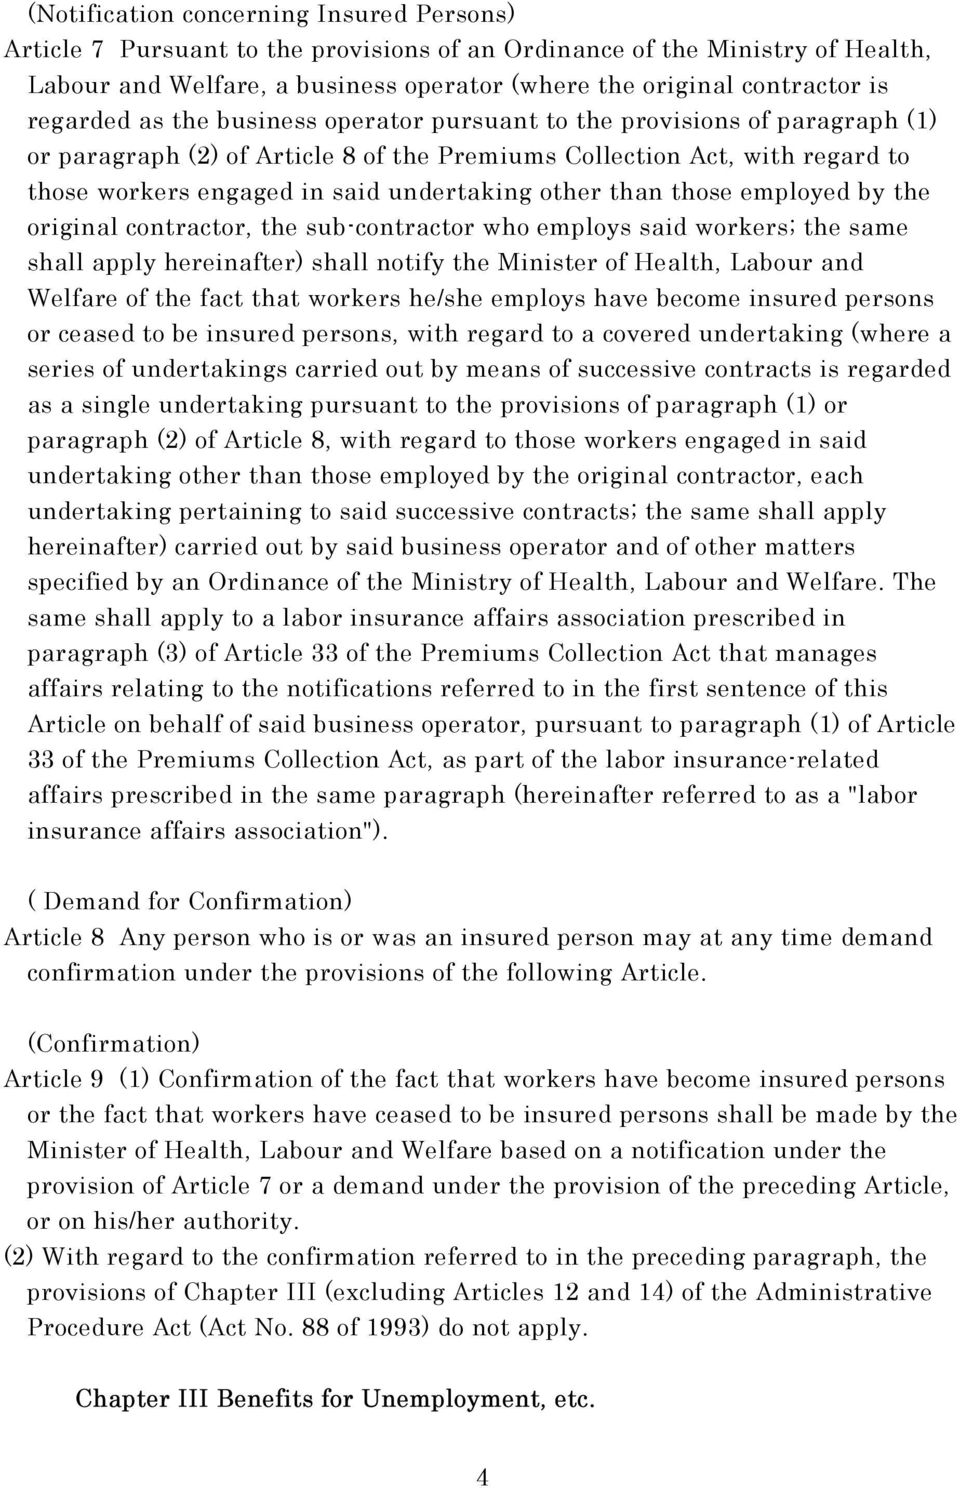 other than those employed by the original contractor, the sub-contractor who employs said workers; the same shall apply hereinafter) shall notify the Minister of Health, Labour and Welfare of the